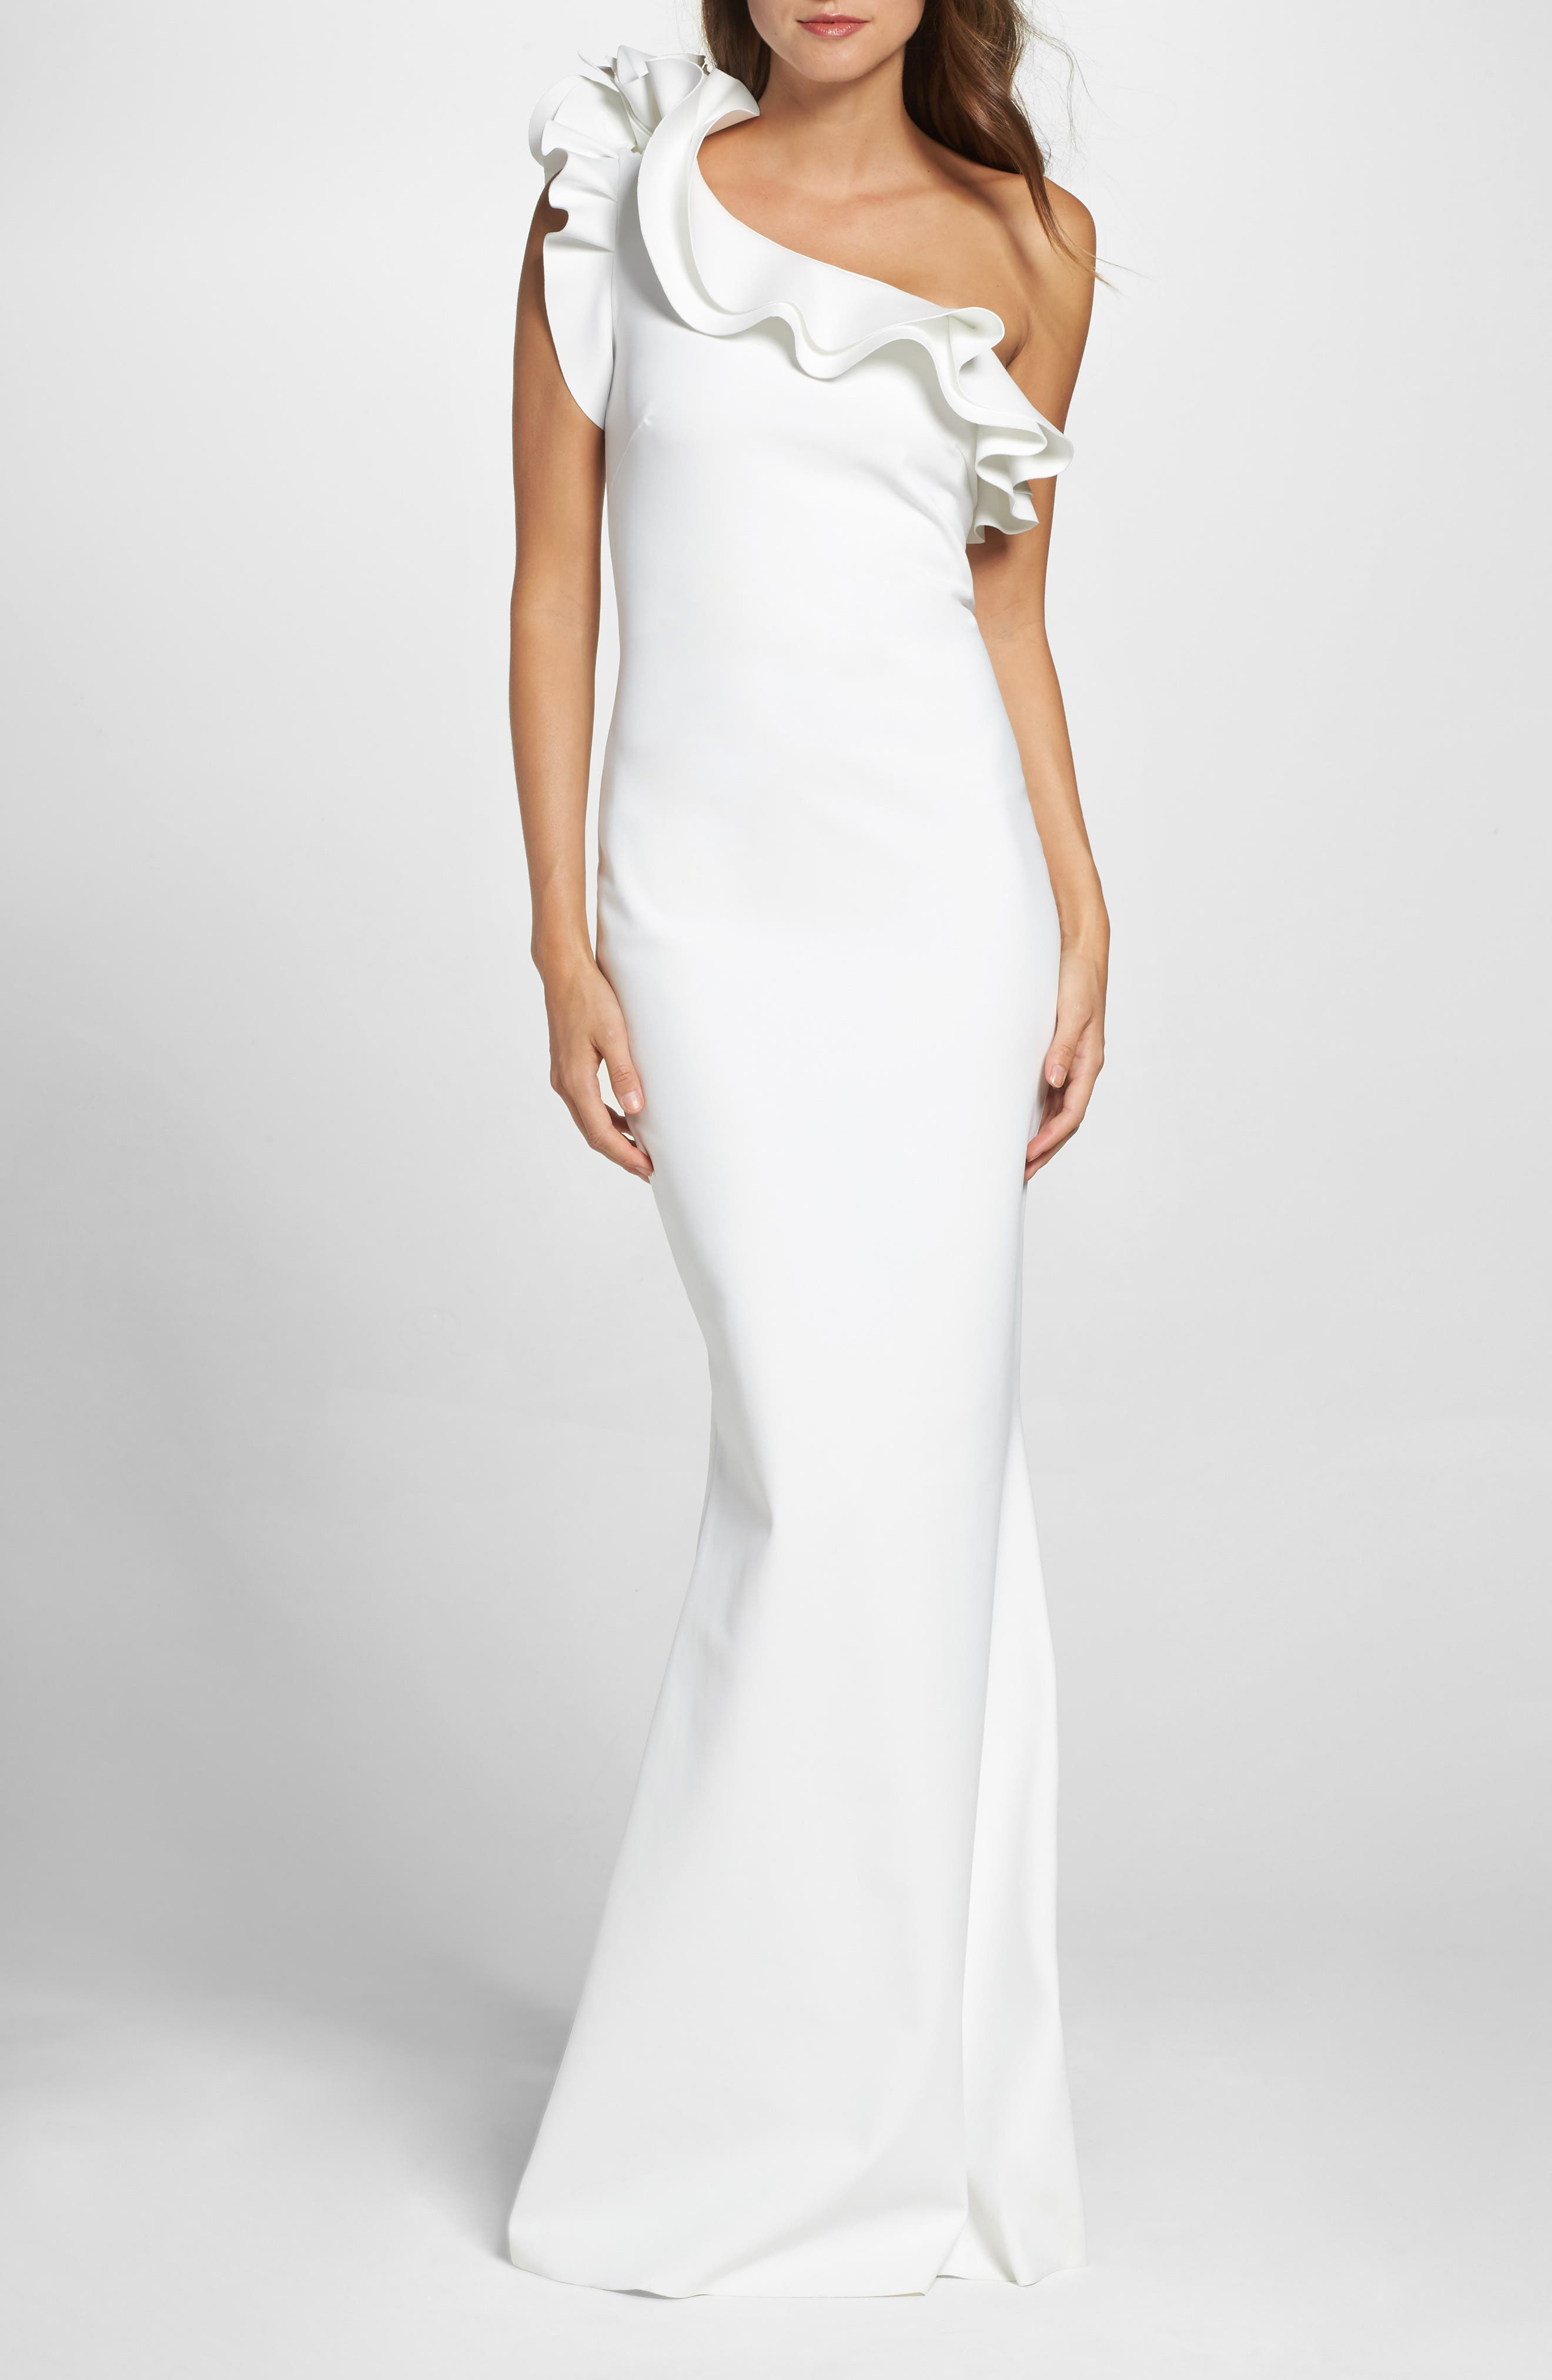 Elisir Ruffle One-Shoulder Gown,                         Main,                         color, White